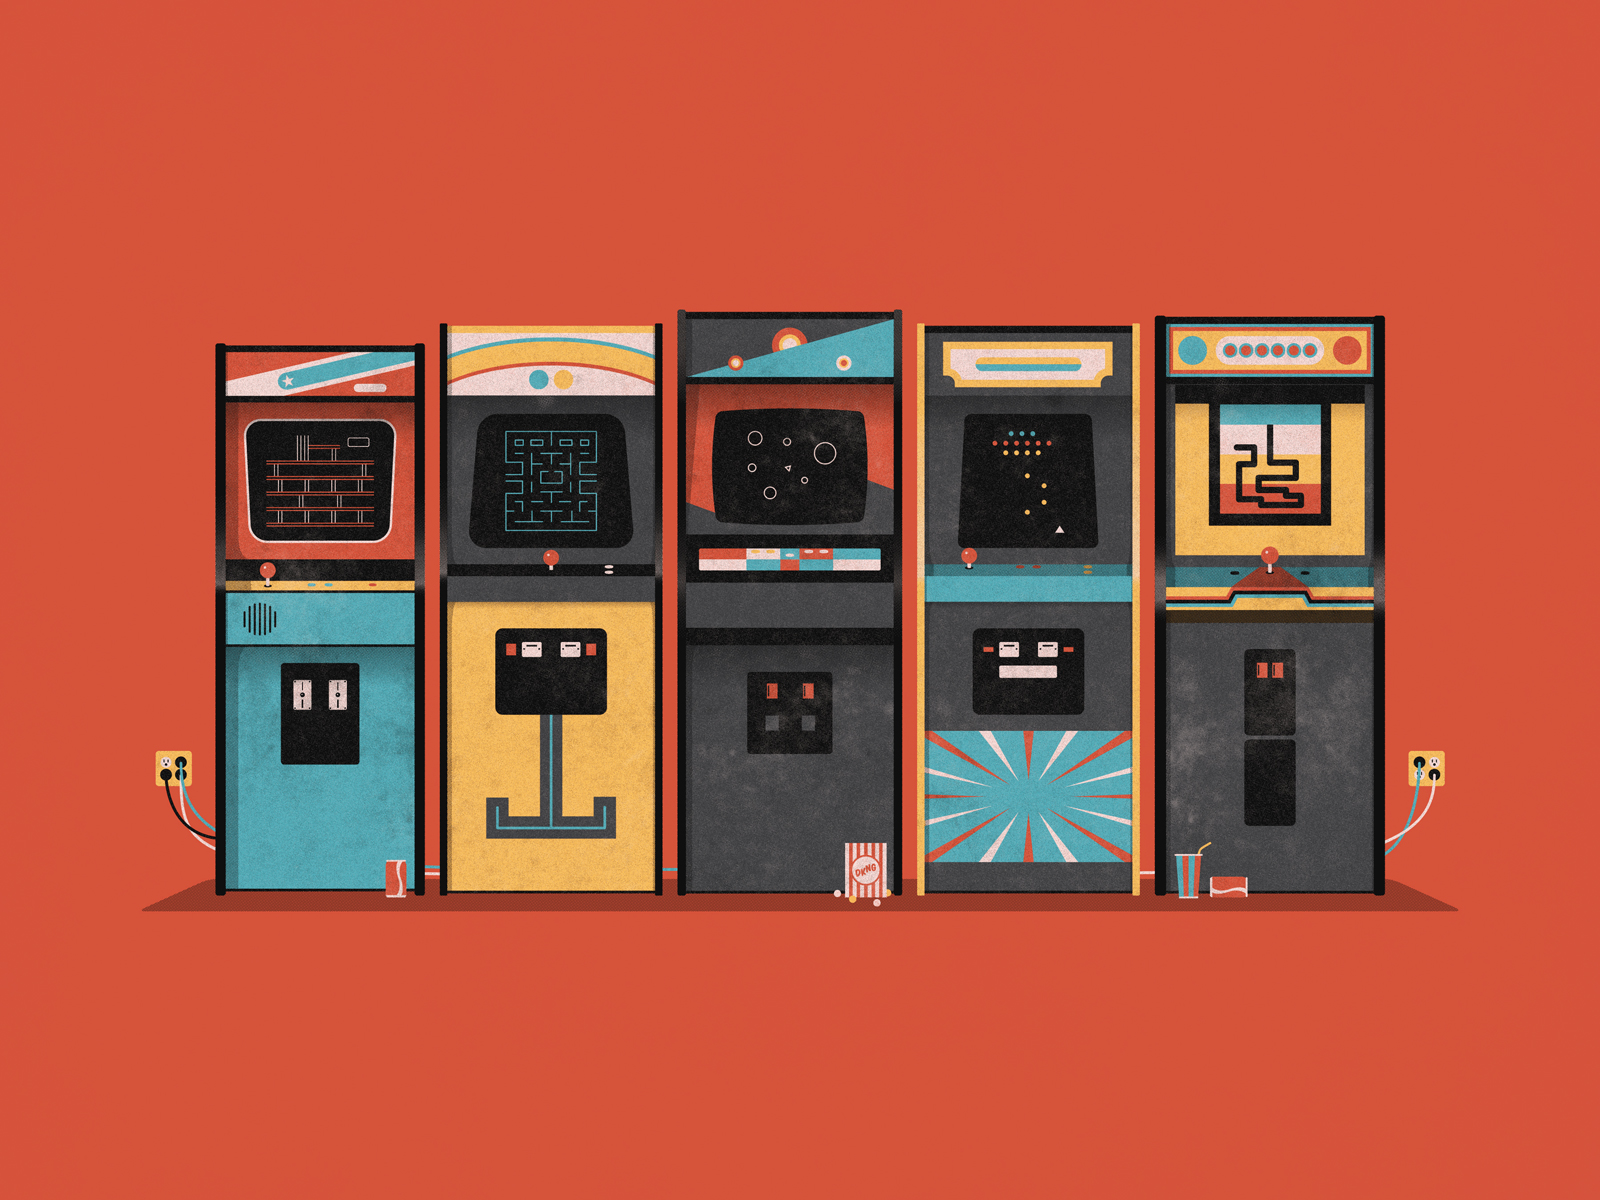 Arcade Debuts At Iam8bit Entertainment System DKNG